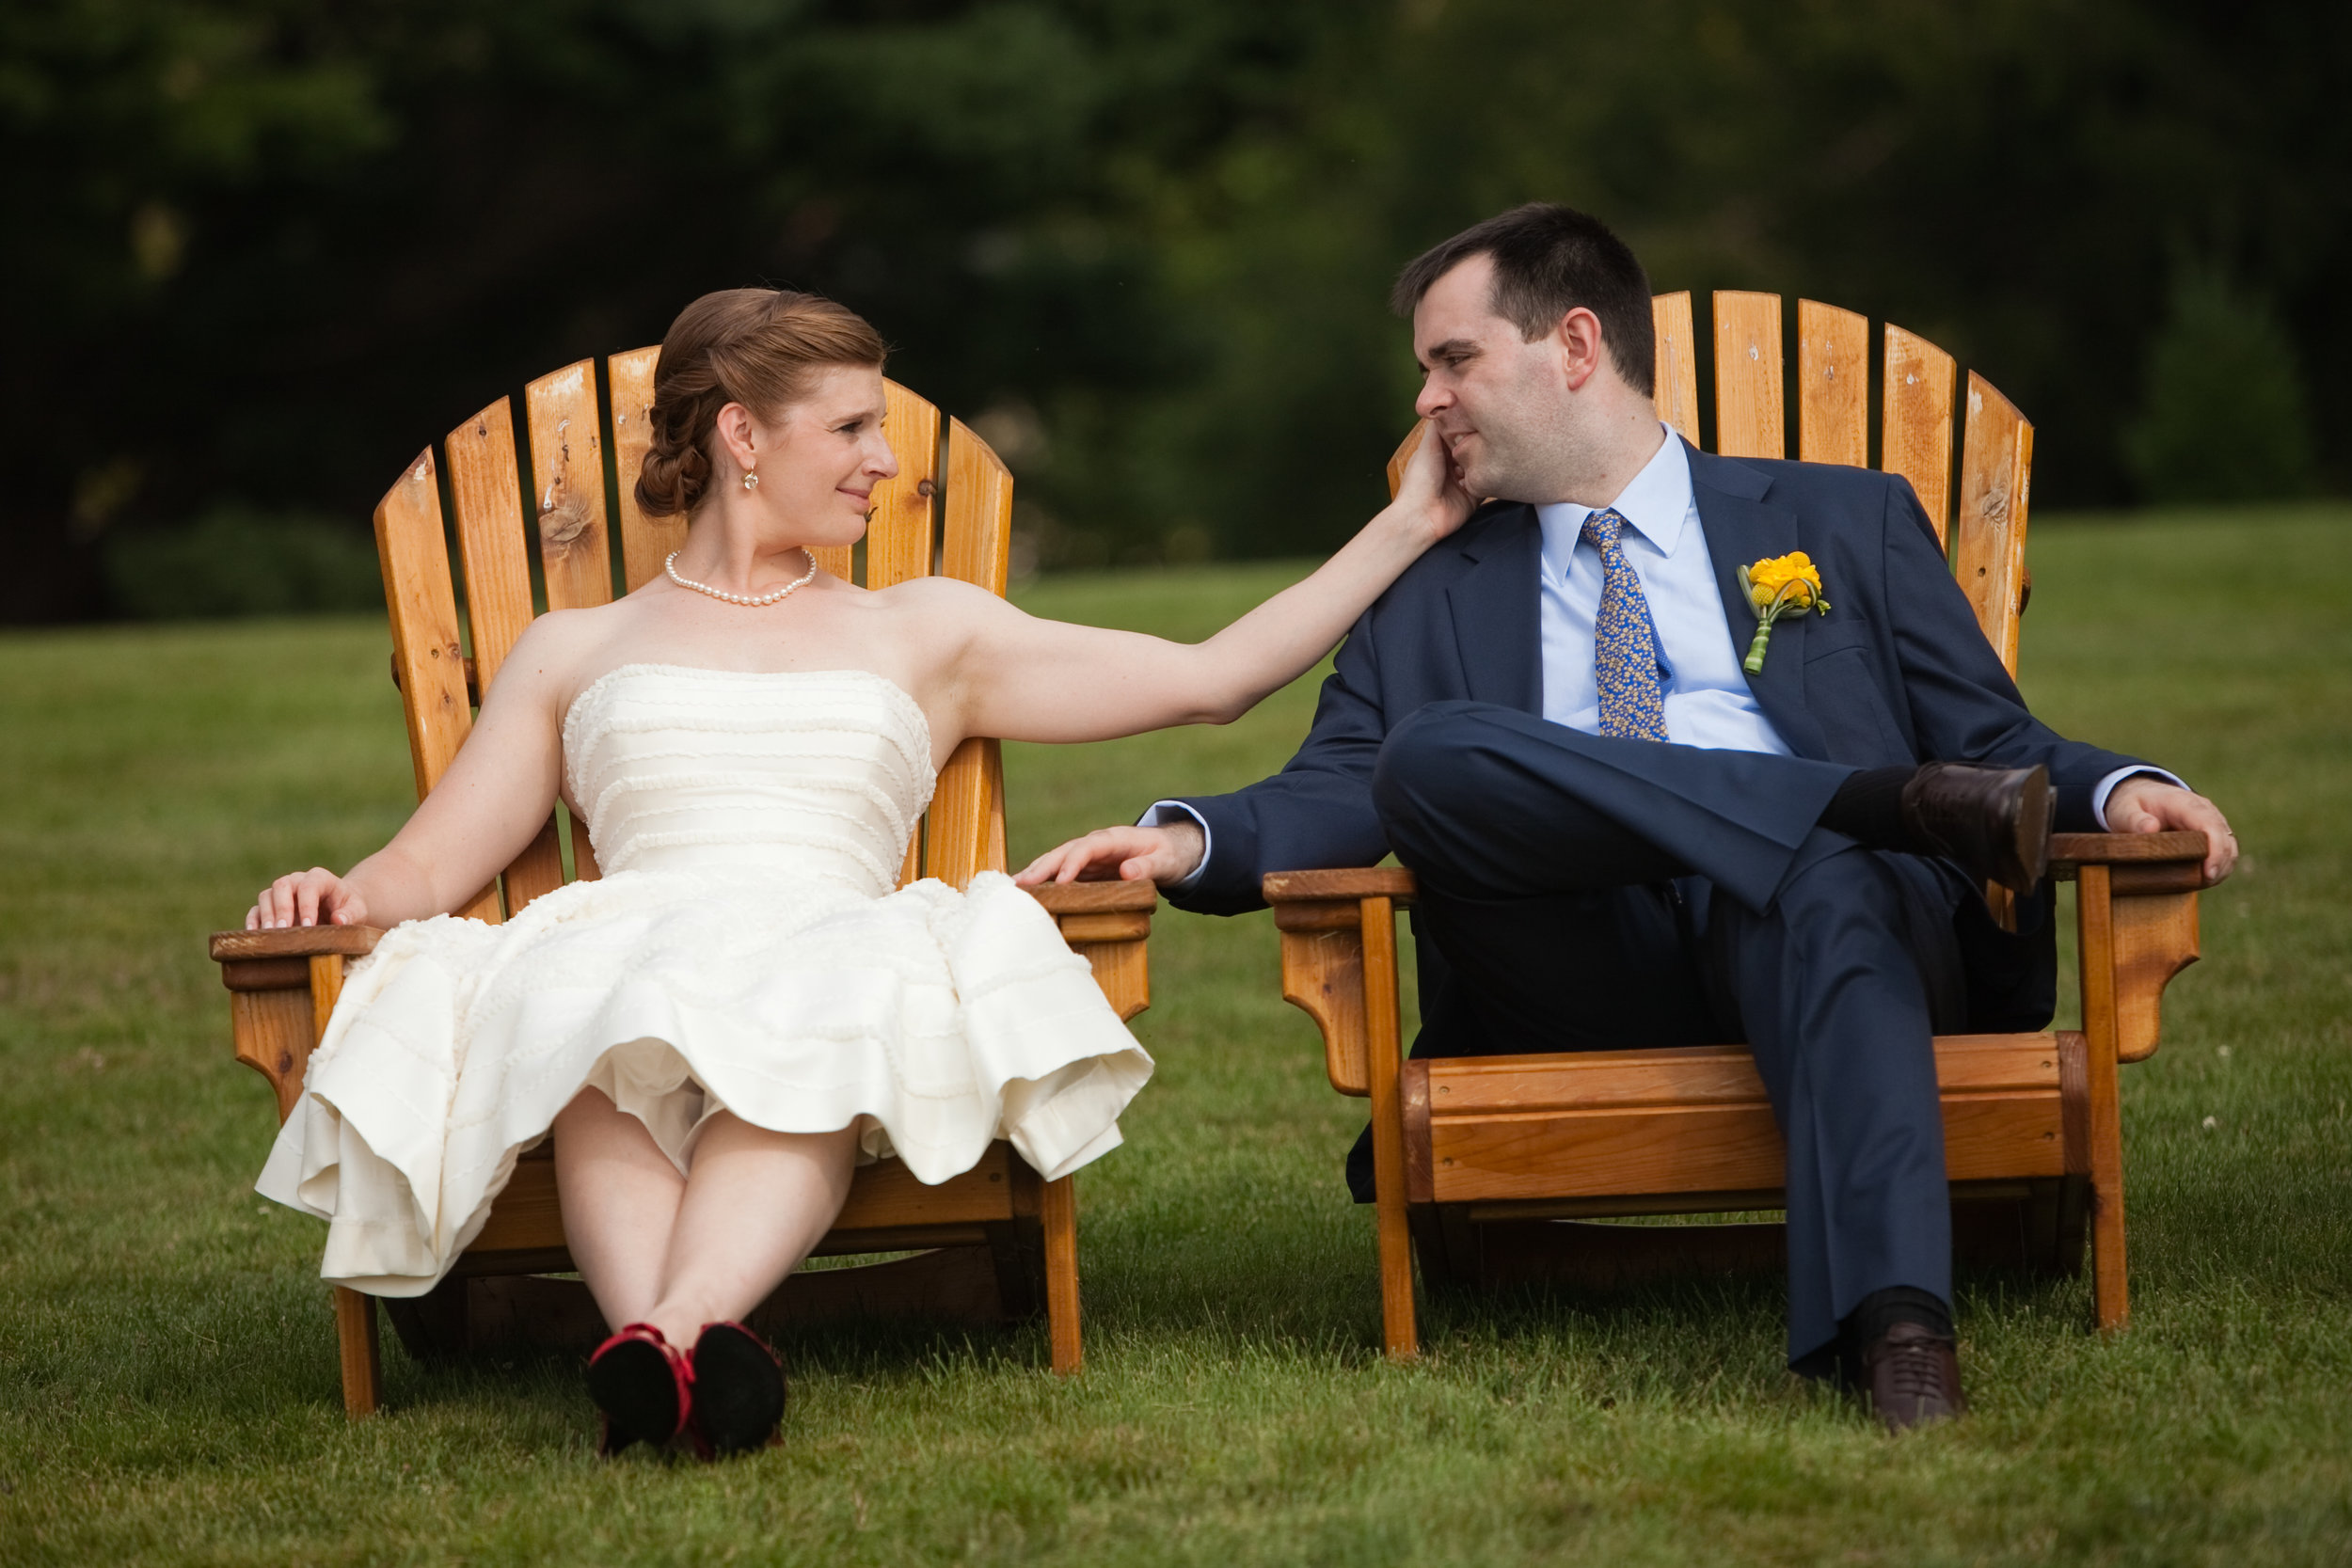 COUNTRY RETREAT - Venue: The Winthrop Estate, Lenox, MAPhotography: Bruce Plotkin